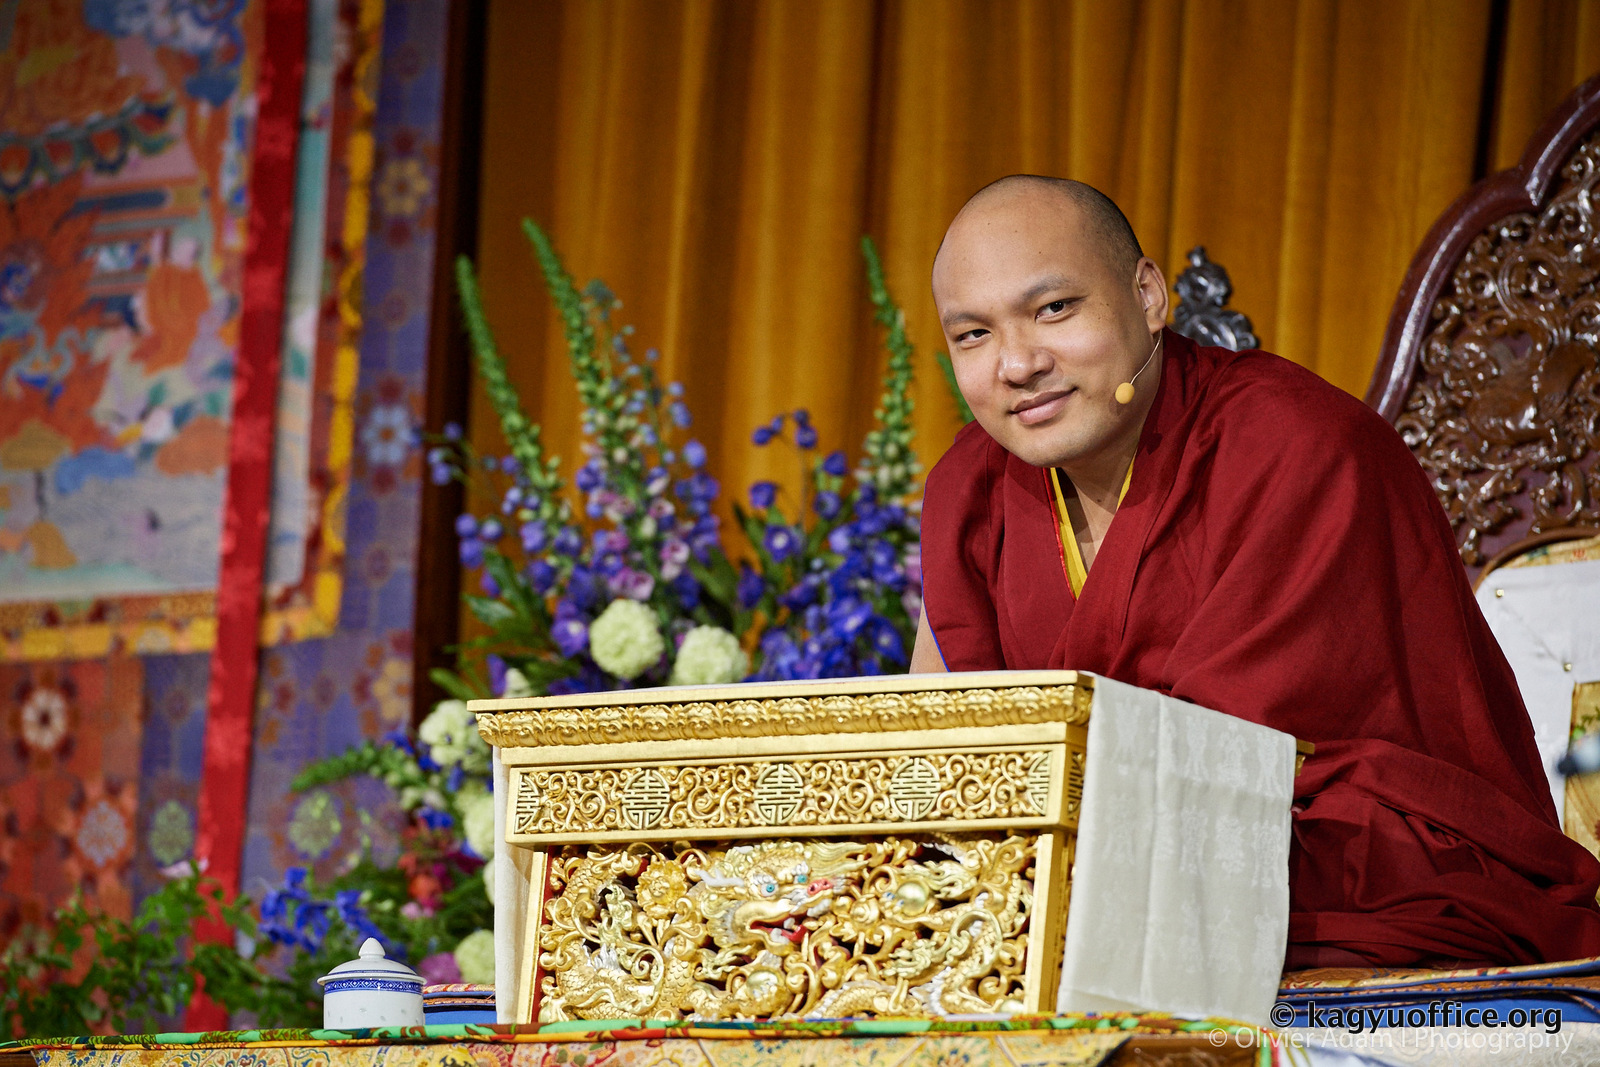 Gyalwang Karmapa Begins Teaching the Eight Verses of Mind Training: Diamonds in the Rough